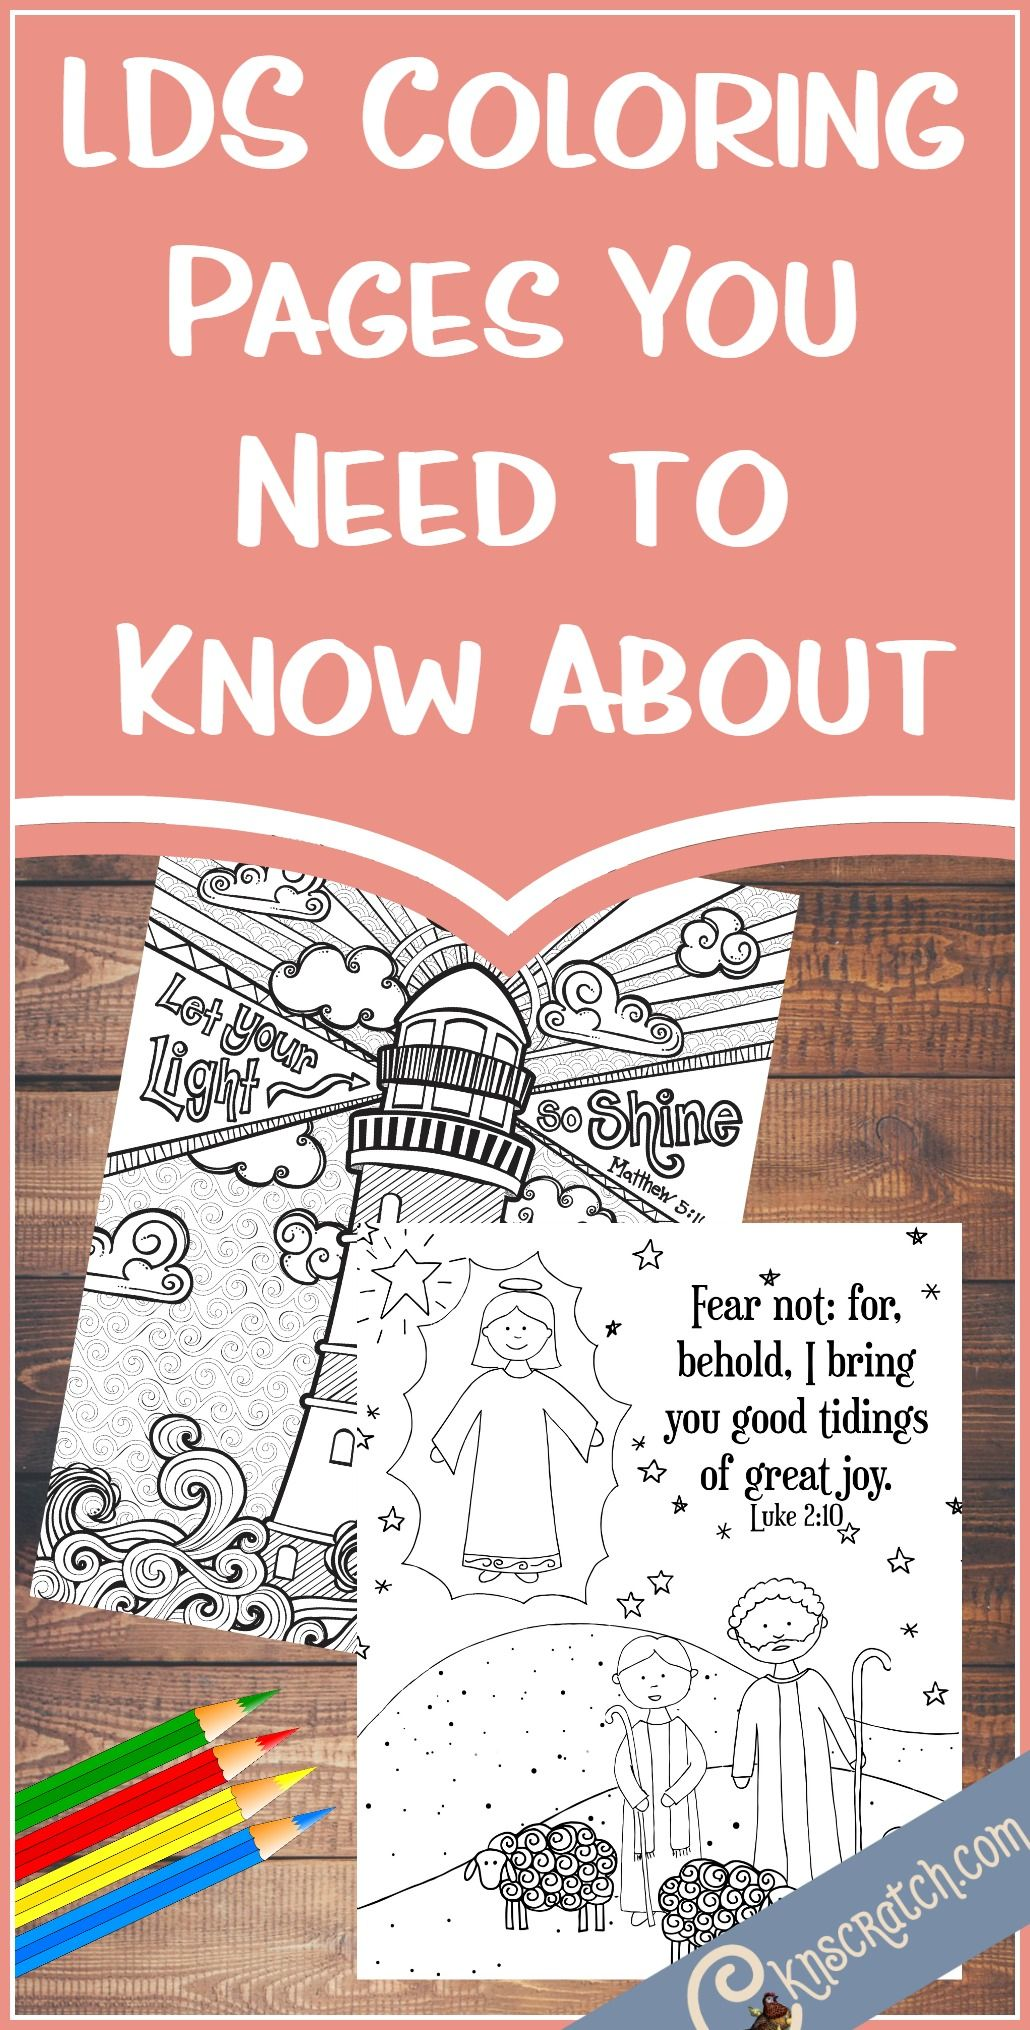 LDS Coloring Pages You Need to Know About   I belong to the church ...